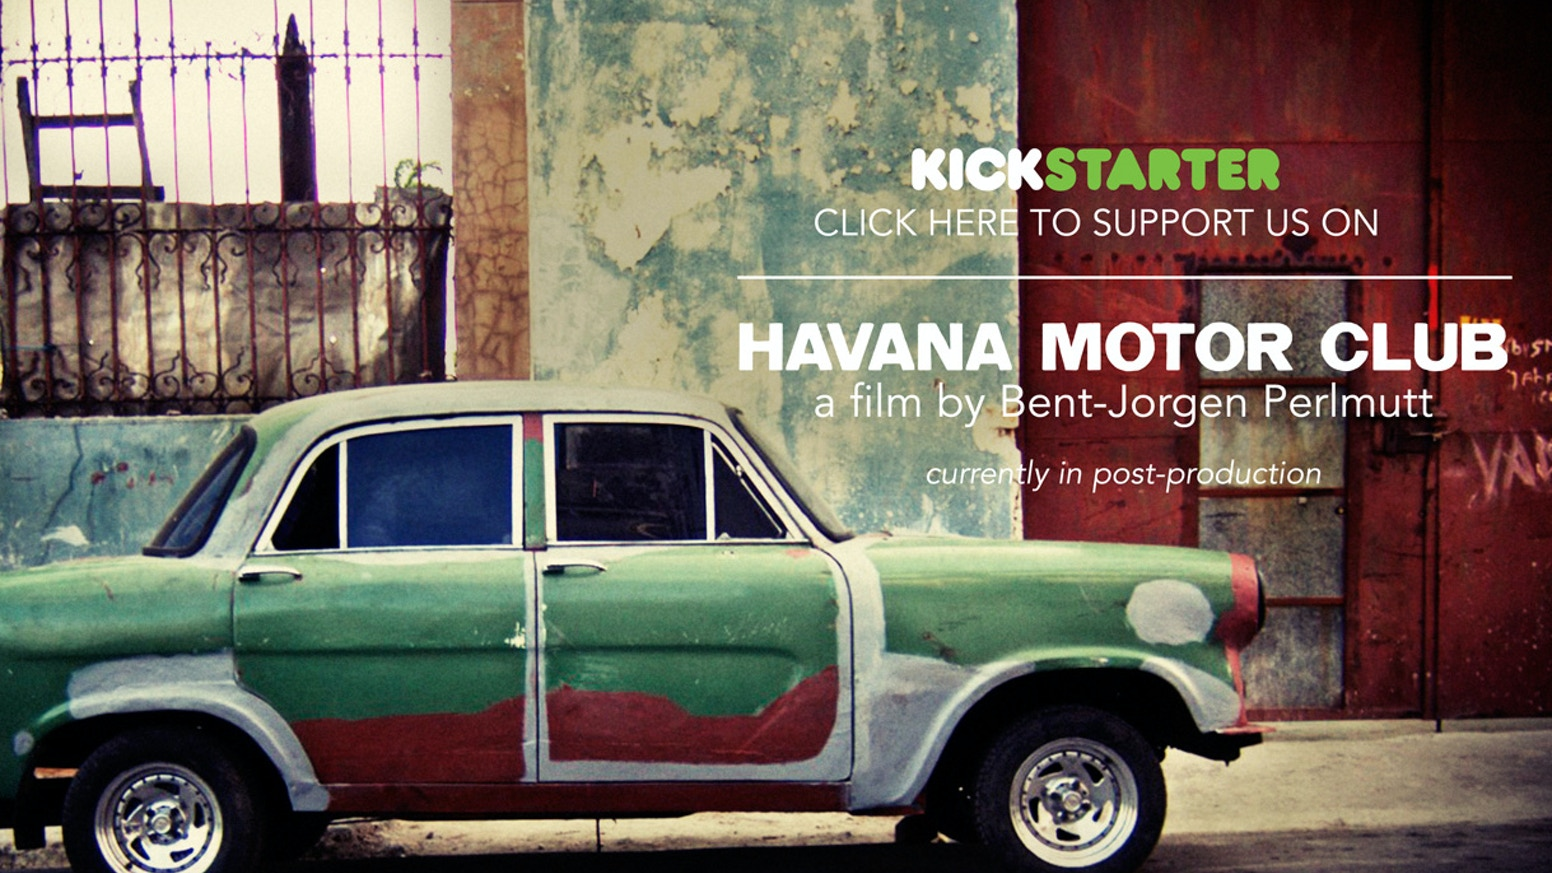 Help us finish our documentary about Cuba's drag-racing community and their quest to hold the first official race since the Revolution.